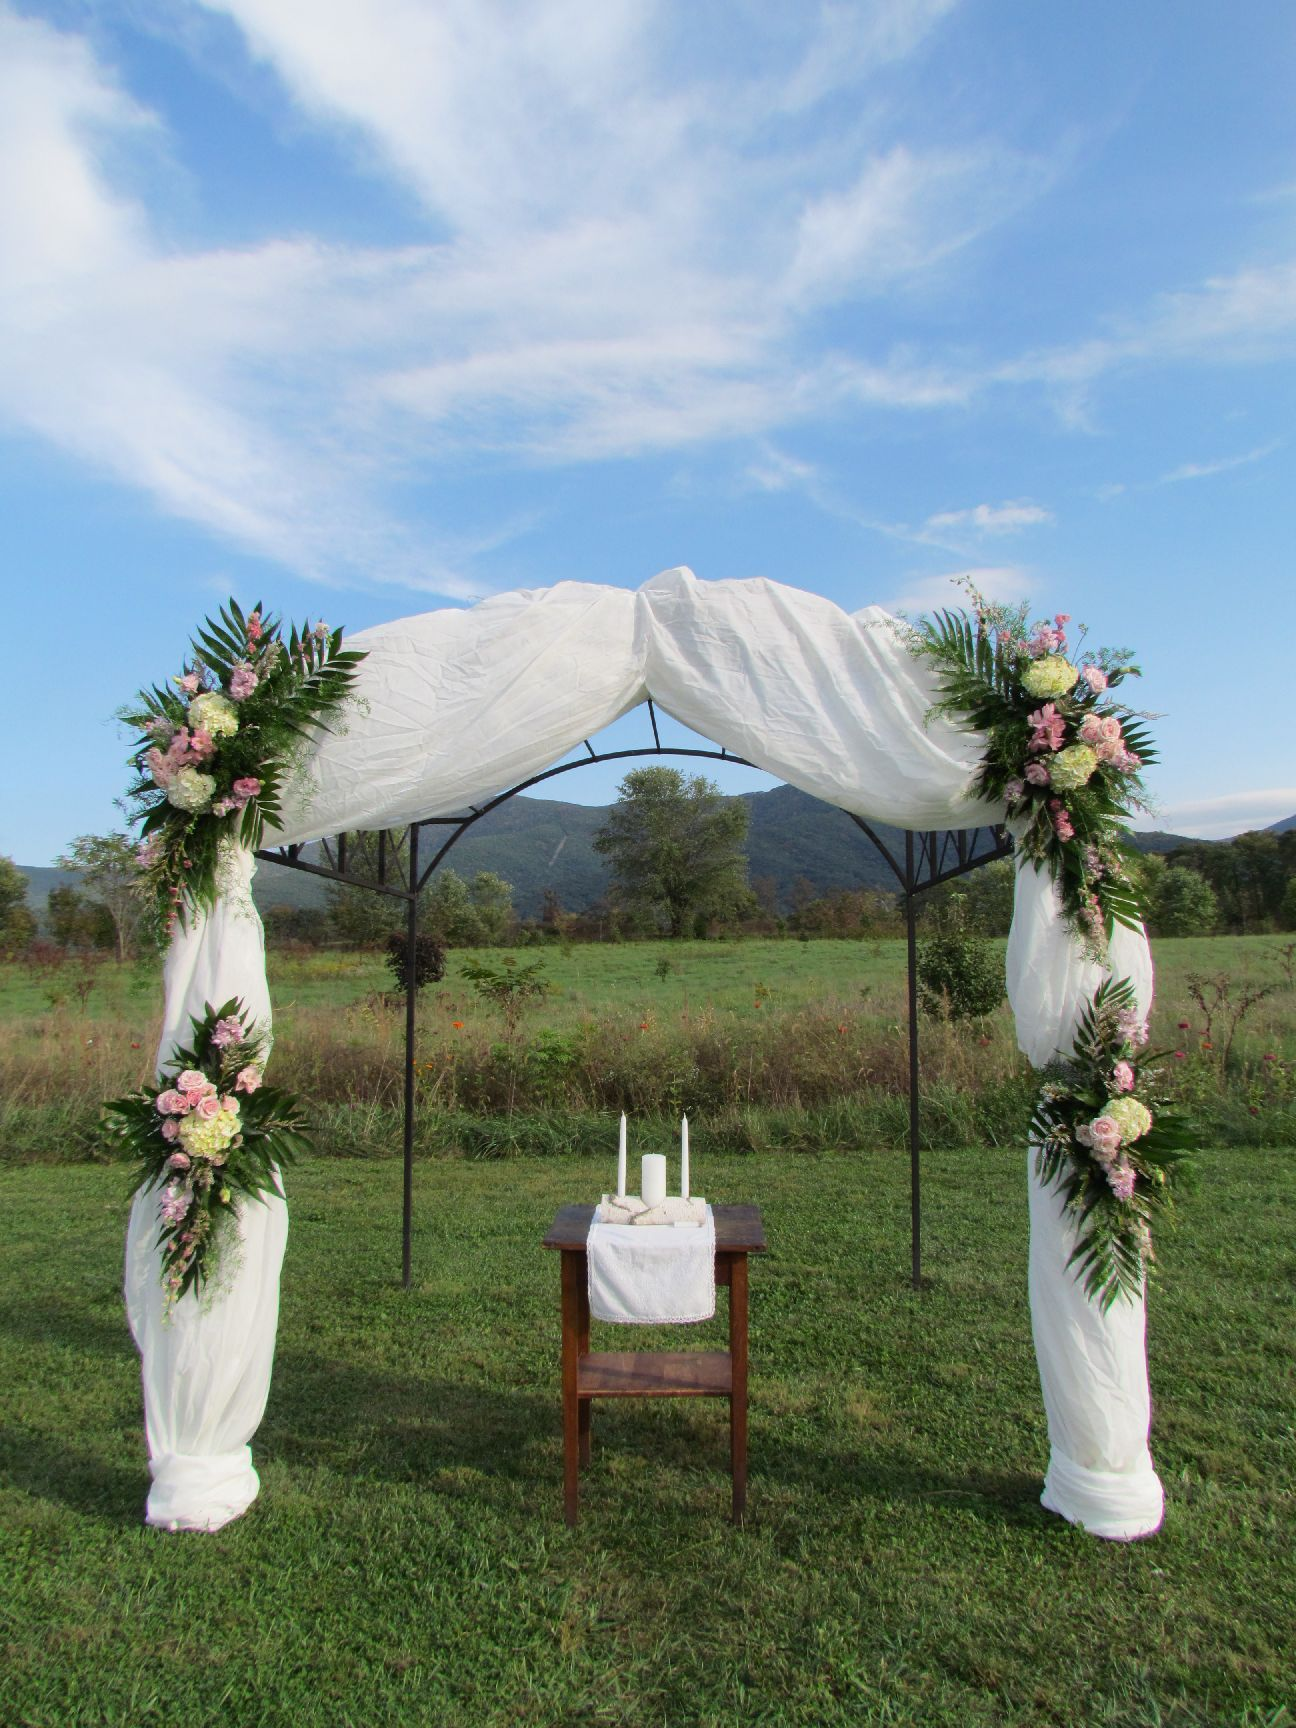 Decorated Arbor Using Sheers And Flower Arrangements This Look